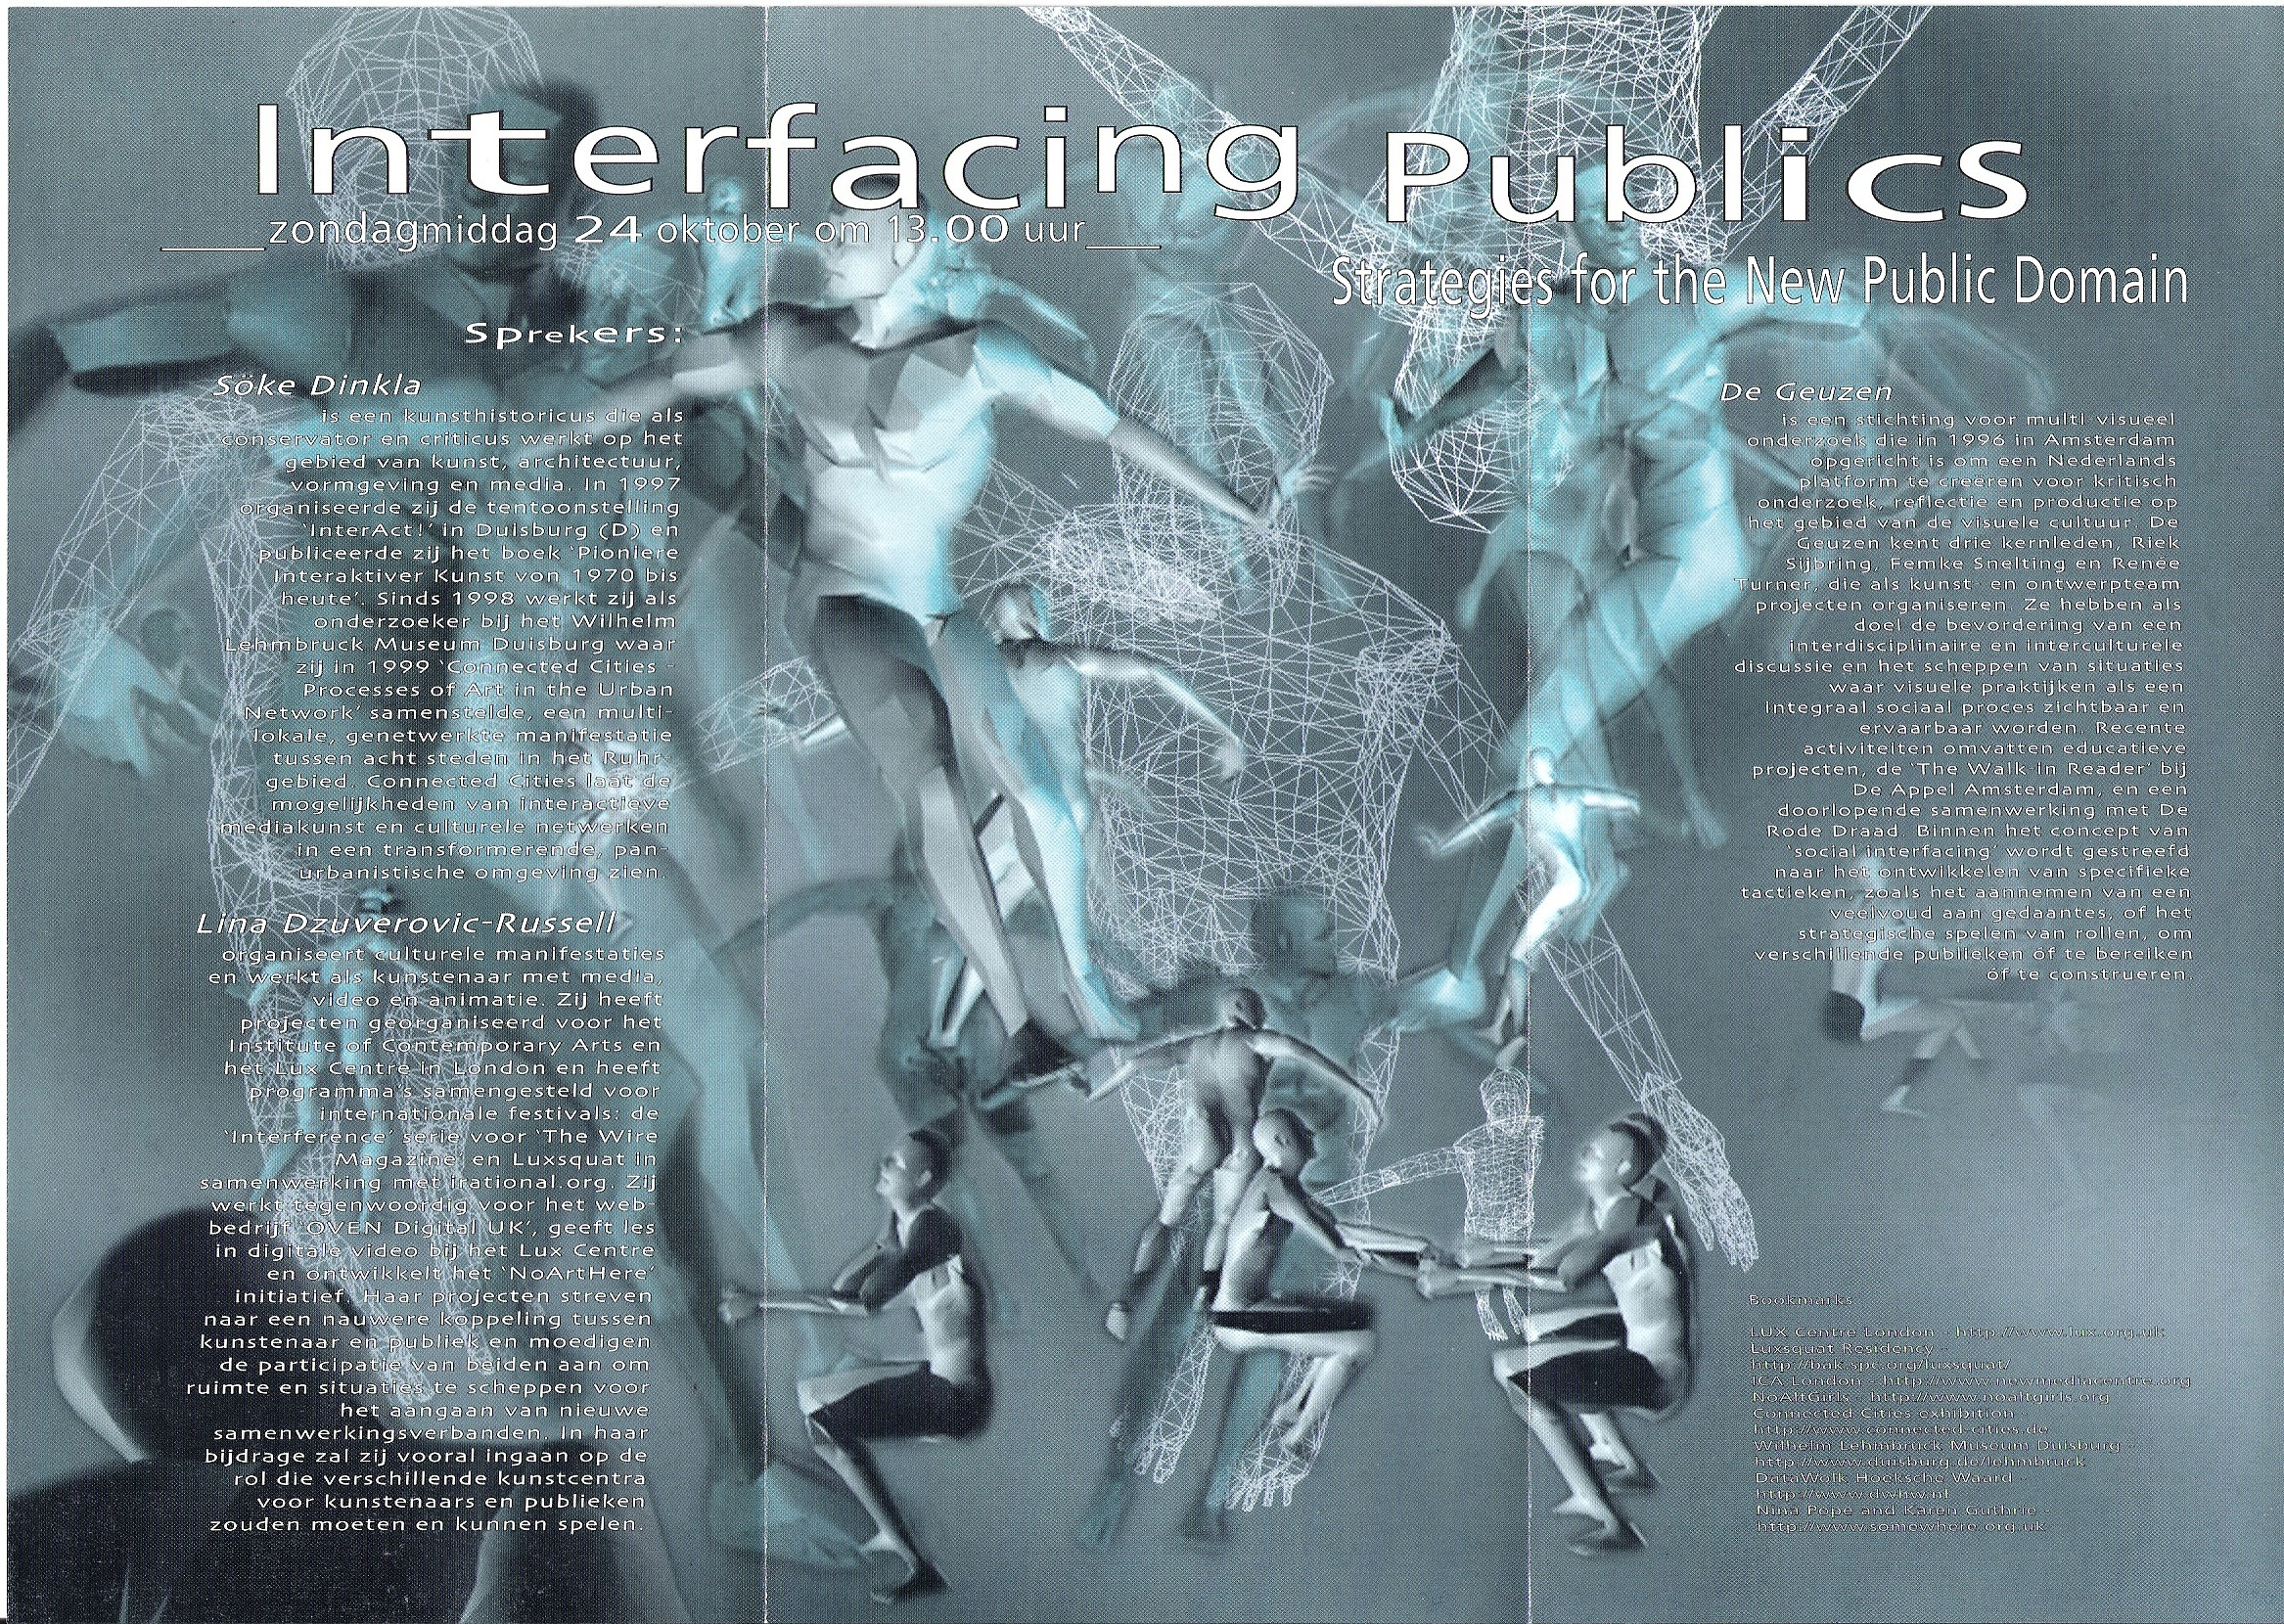 Wiretap 5.10 - Interfacing Publics